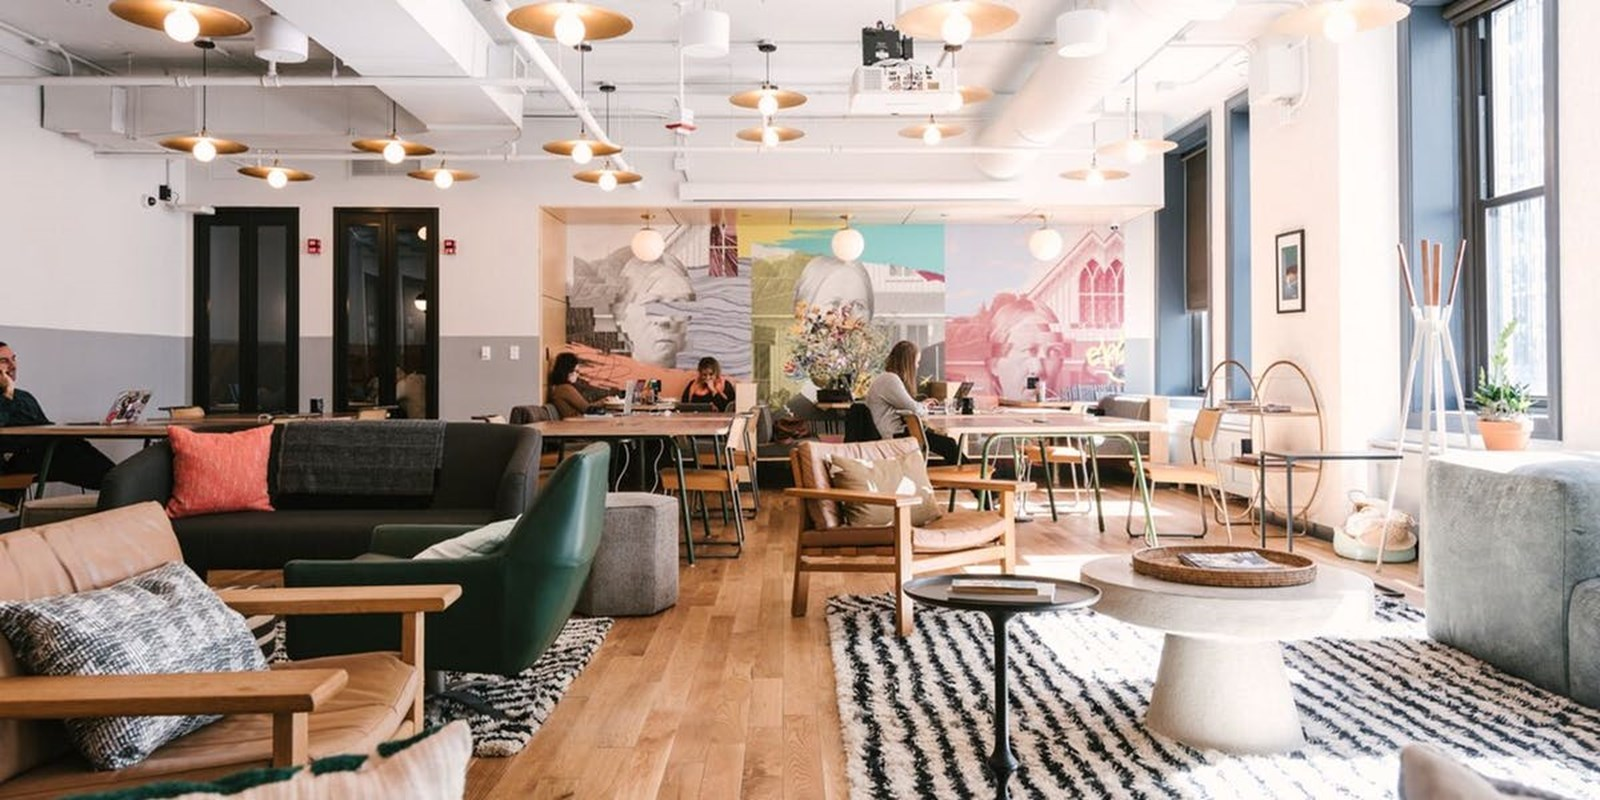 214 West 29th Street - WeWork